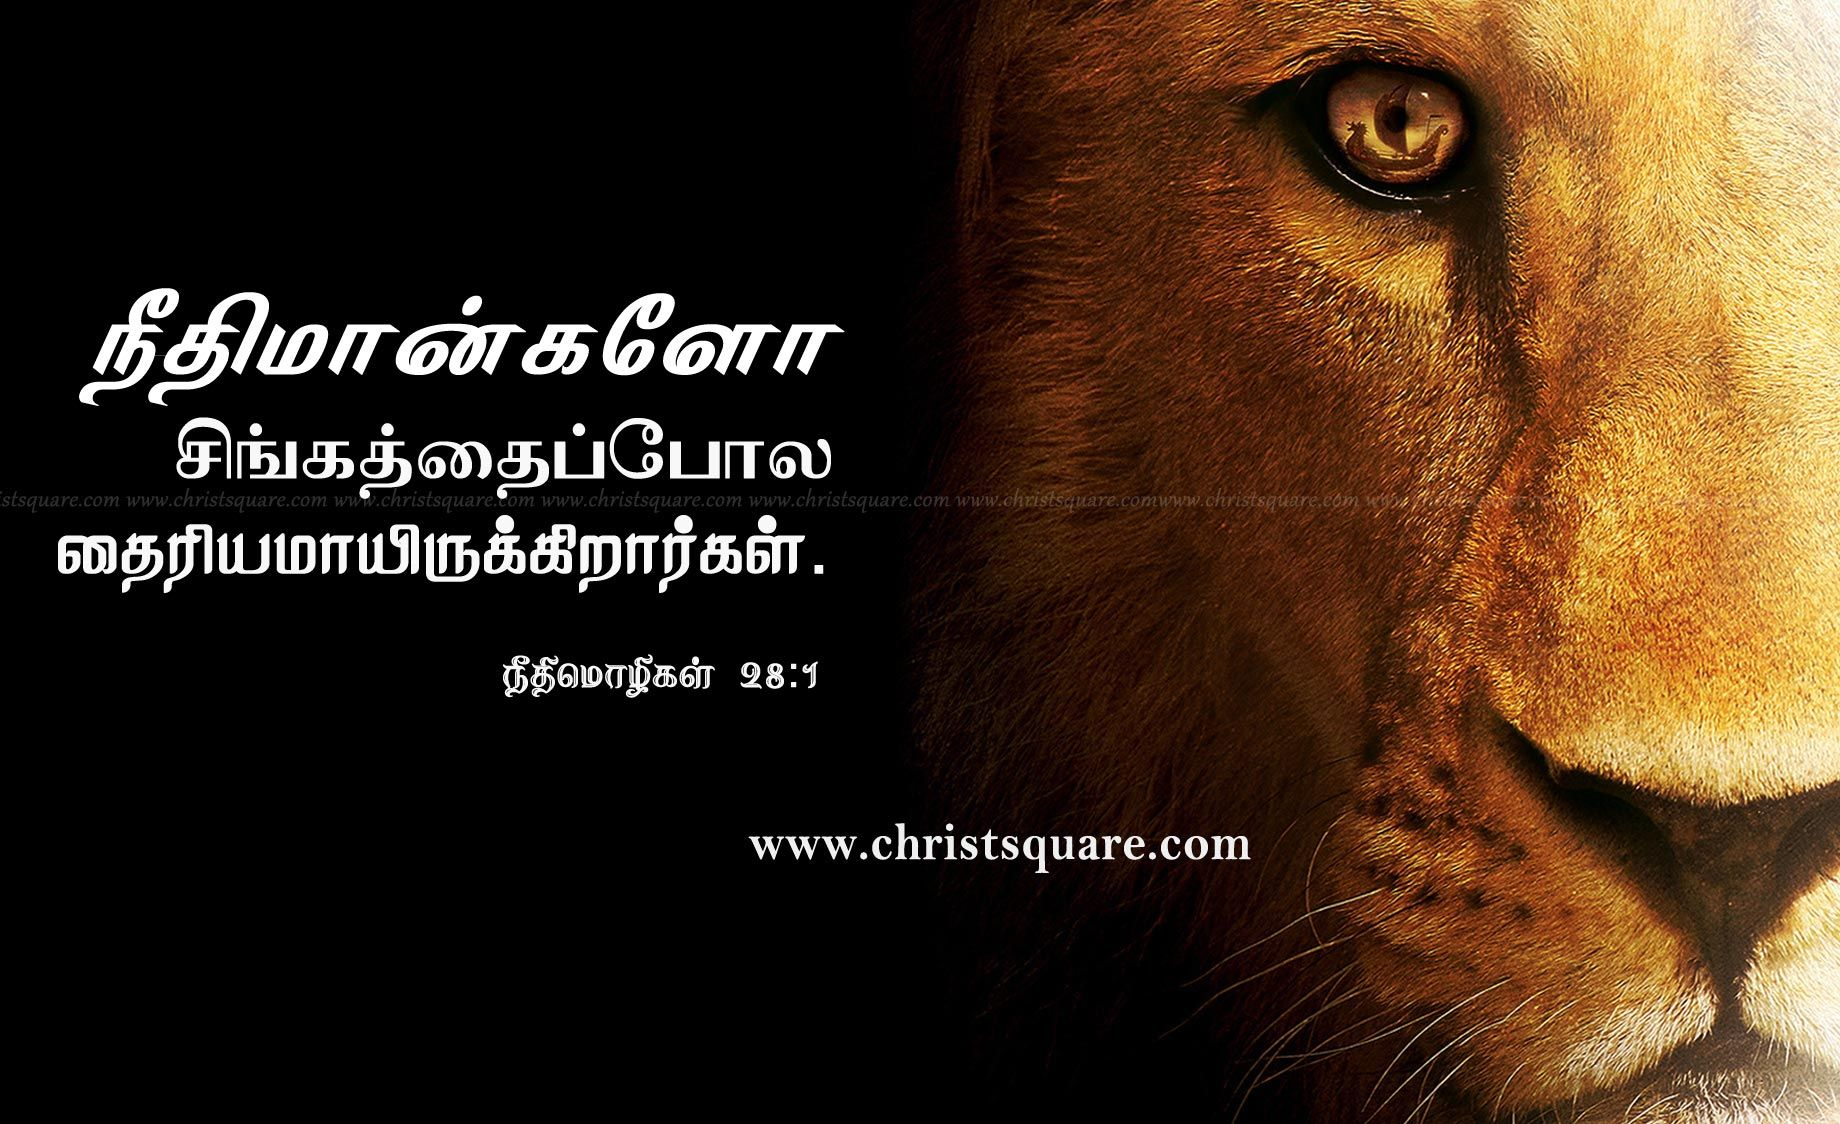 tamil bible words wallpapers - photo #41